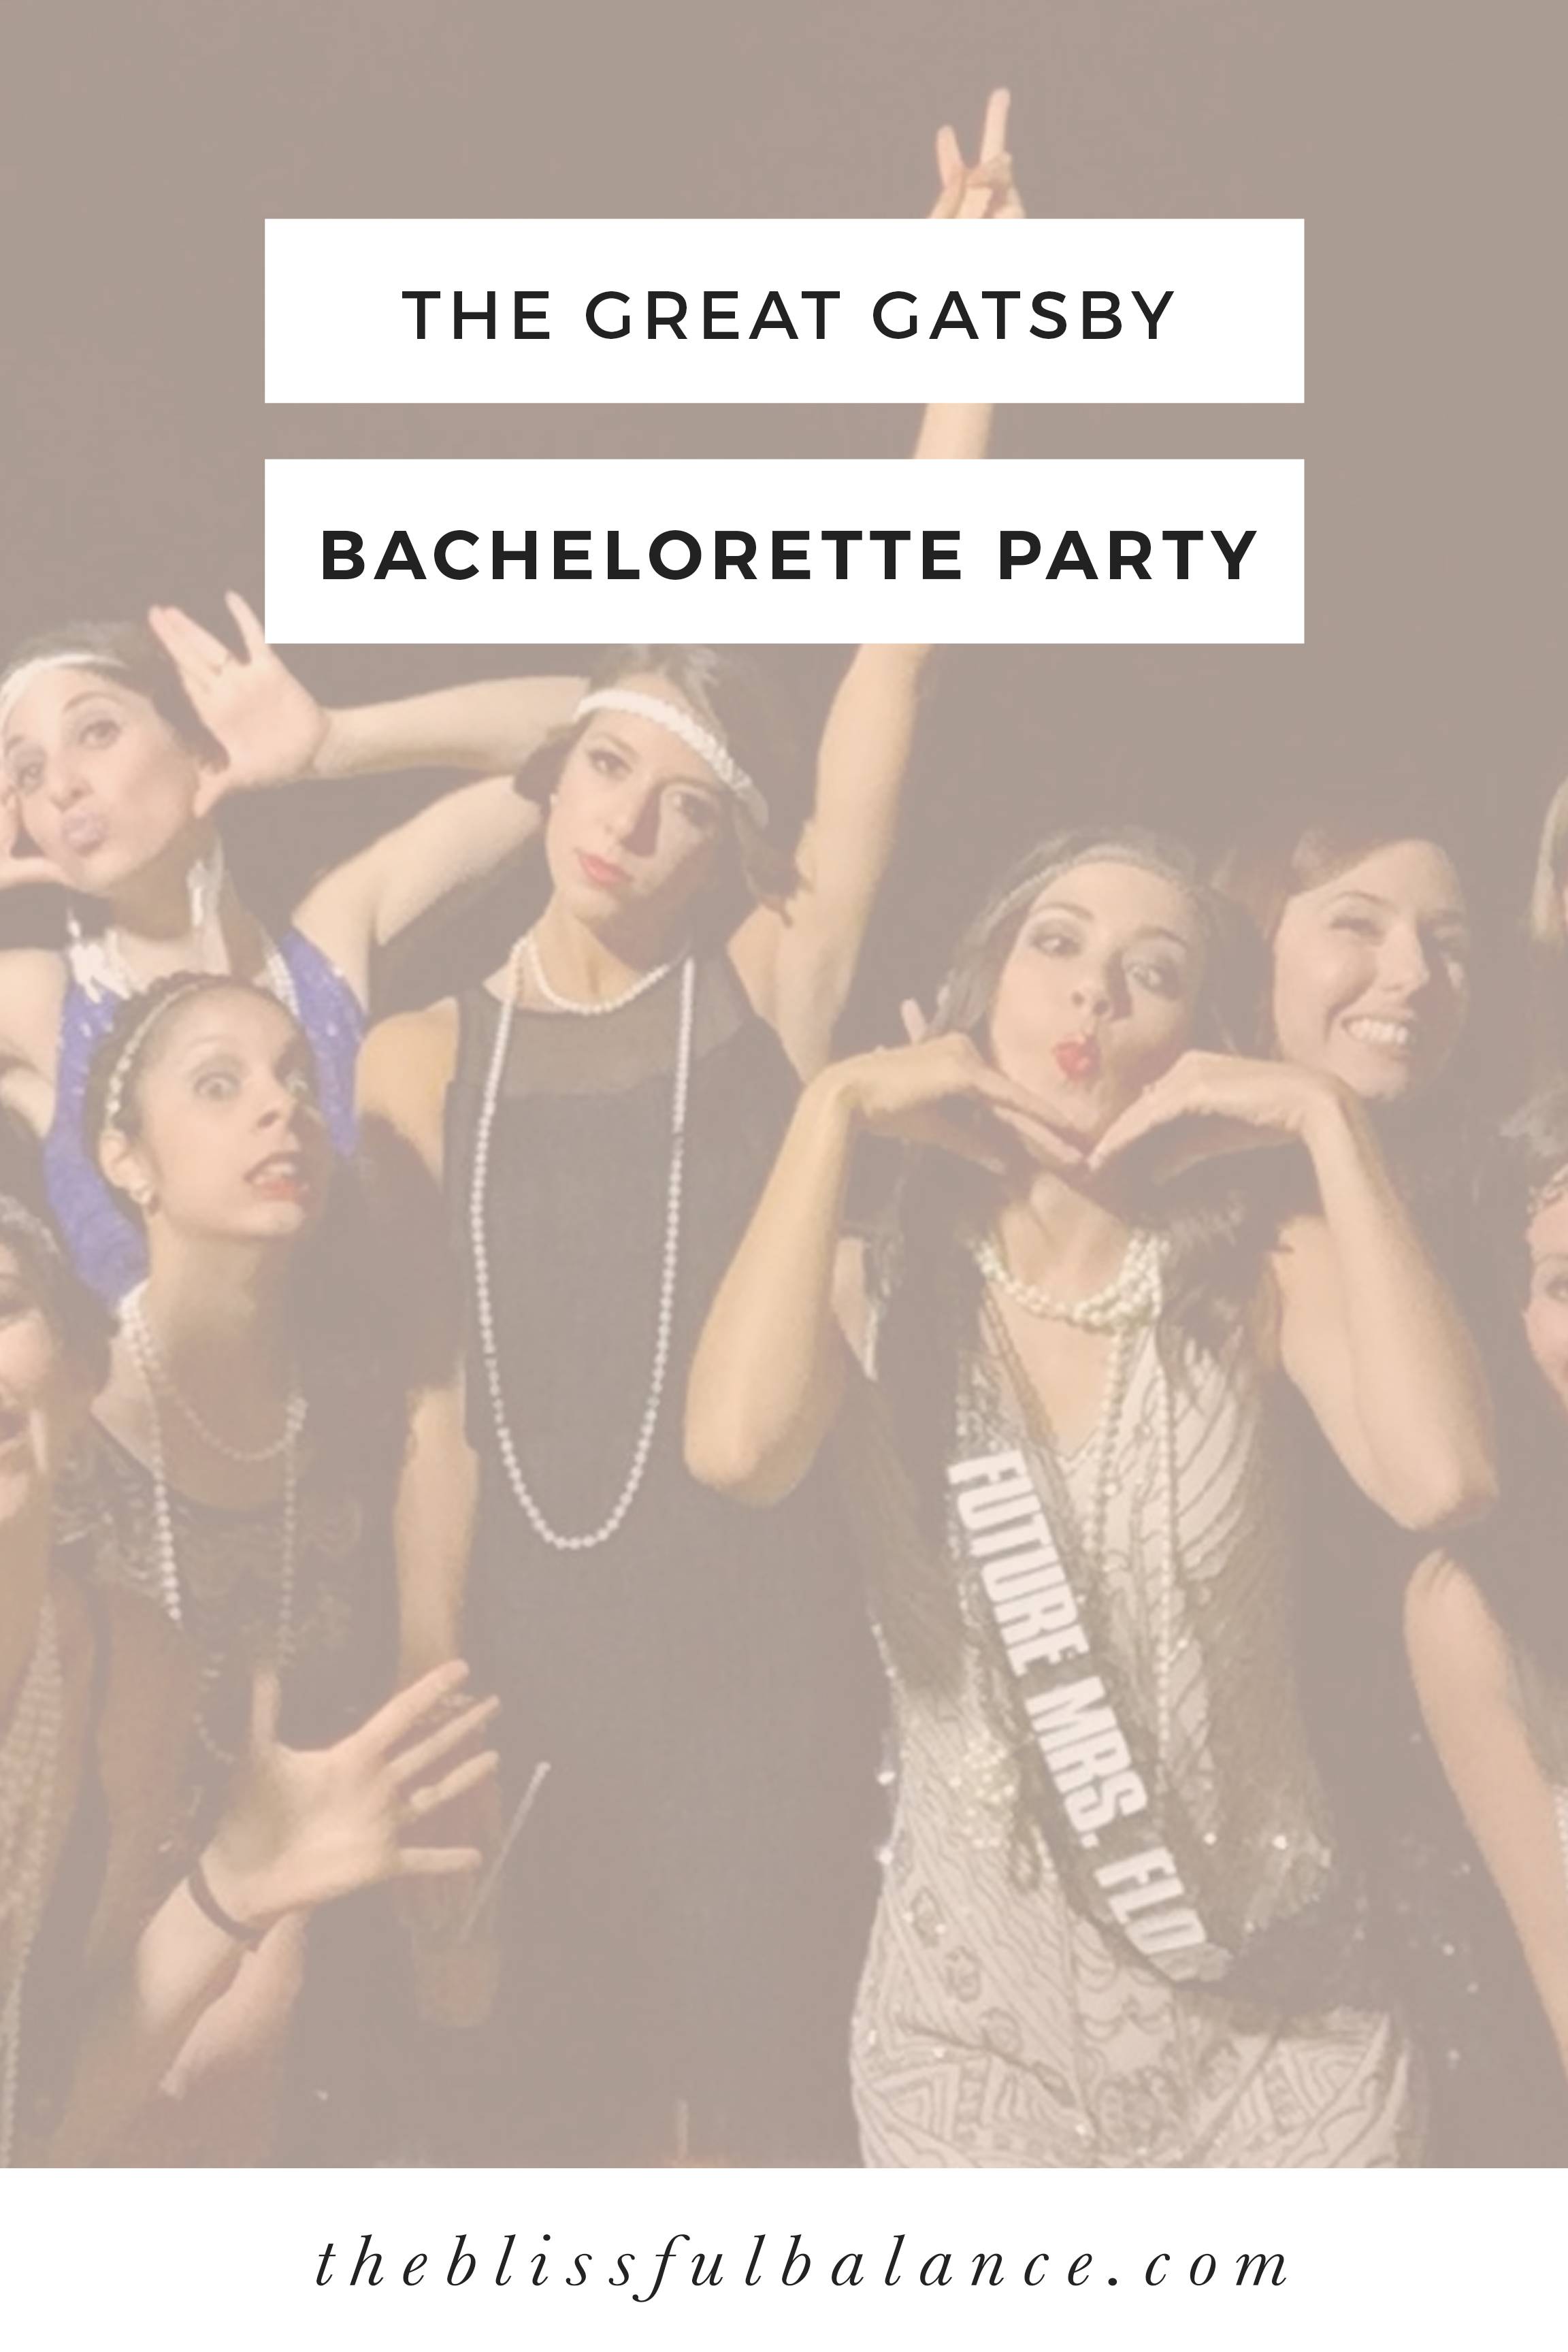 A Great Gatsby-themed bachelorette party!